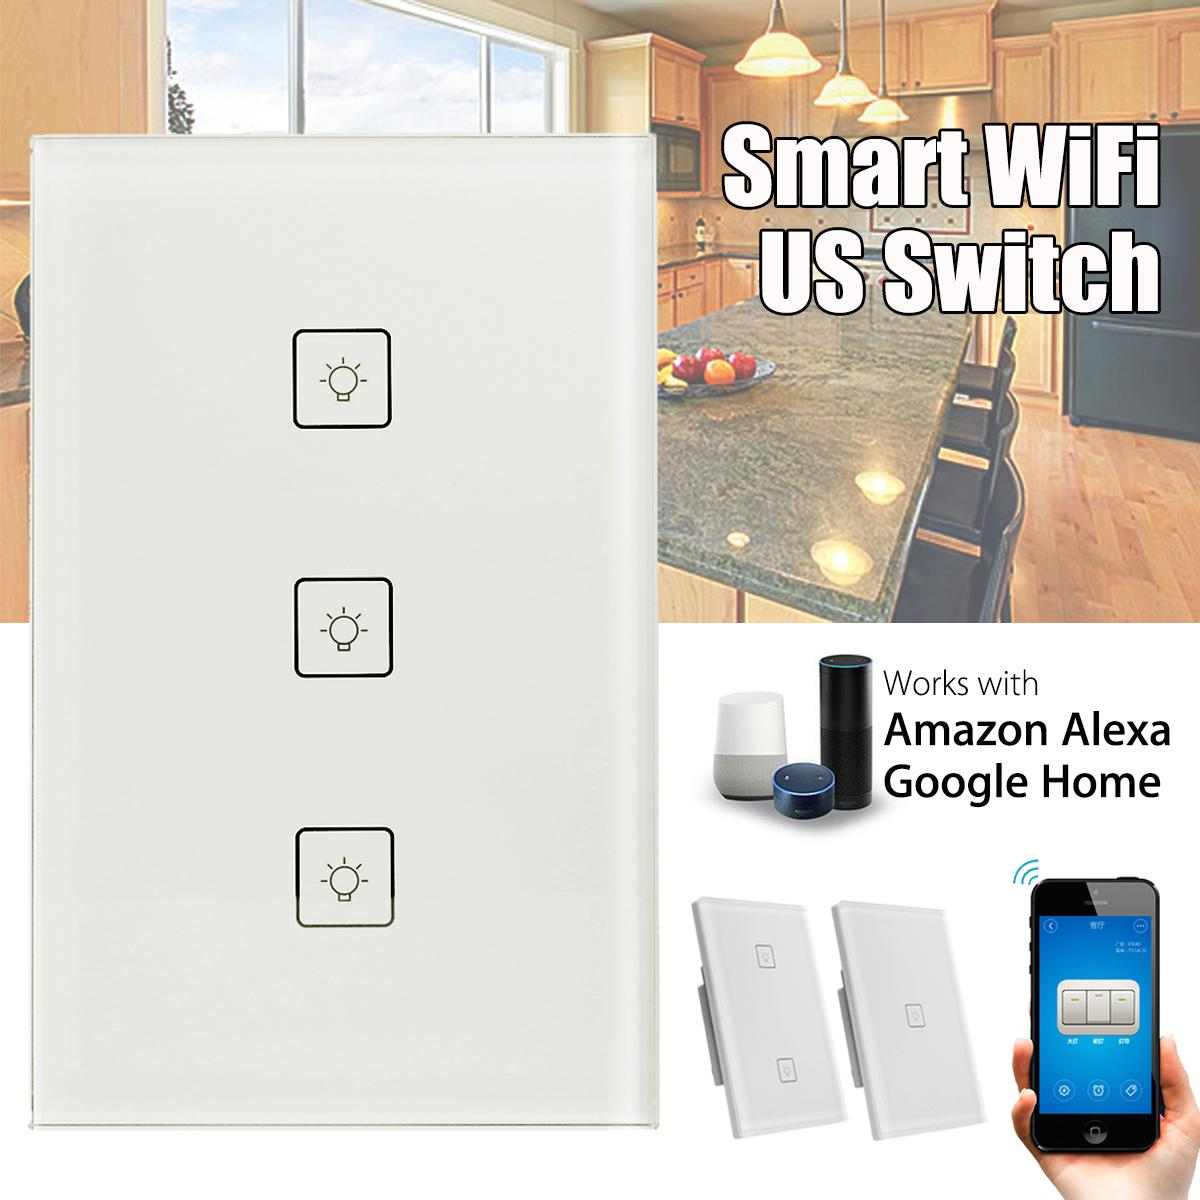 Power Saver For Sale Switch Prices Brands Review In Zigbee Relay Wifi Smart Wall Us Touch Panel App Control W Alexa Google Home